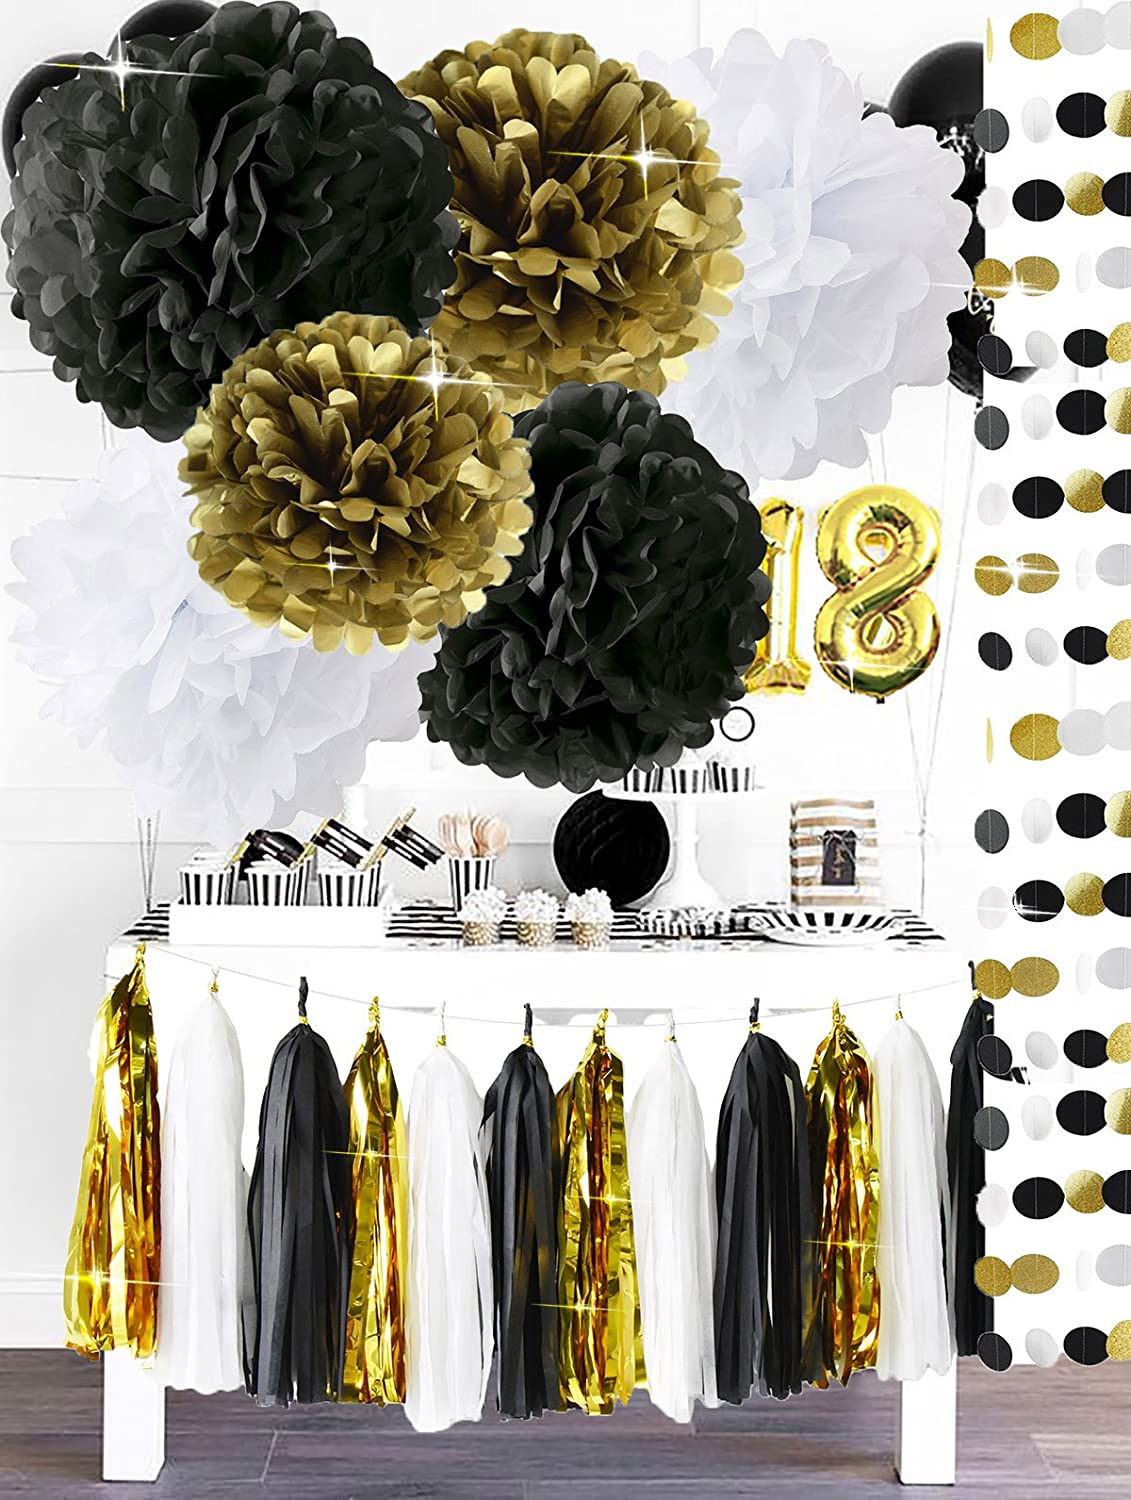 Black Gold White Party DecorationsTissue Paper Pom Pom Paper Tassel Garland for Great Gatsby Decorations /30th/50th/60th/80th Birthday Decorations/Bridal Shower Decorations/Black Gold Party Supplies